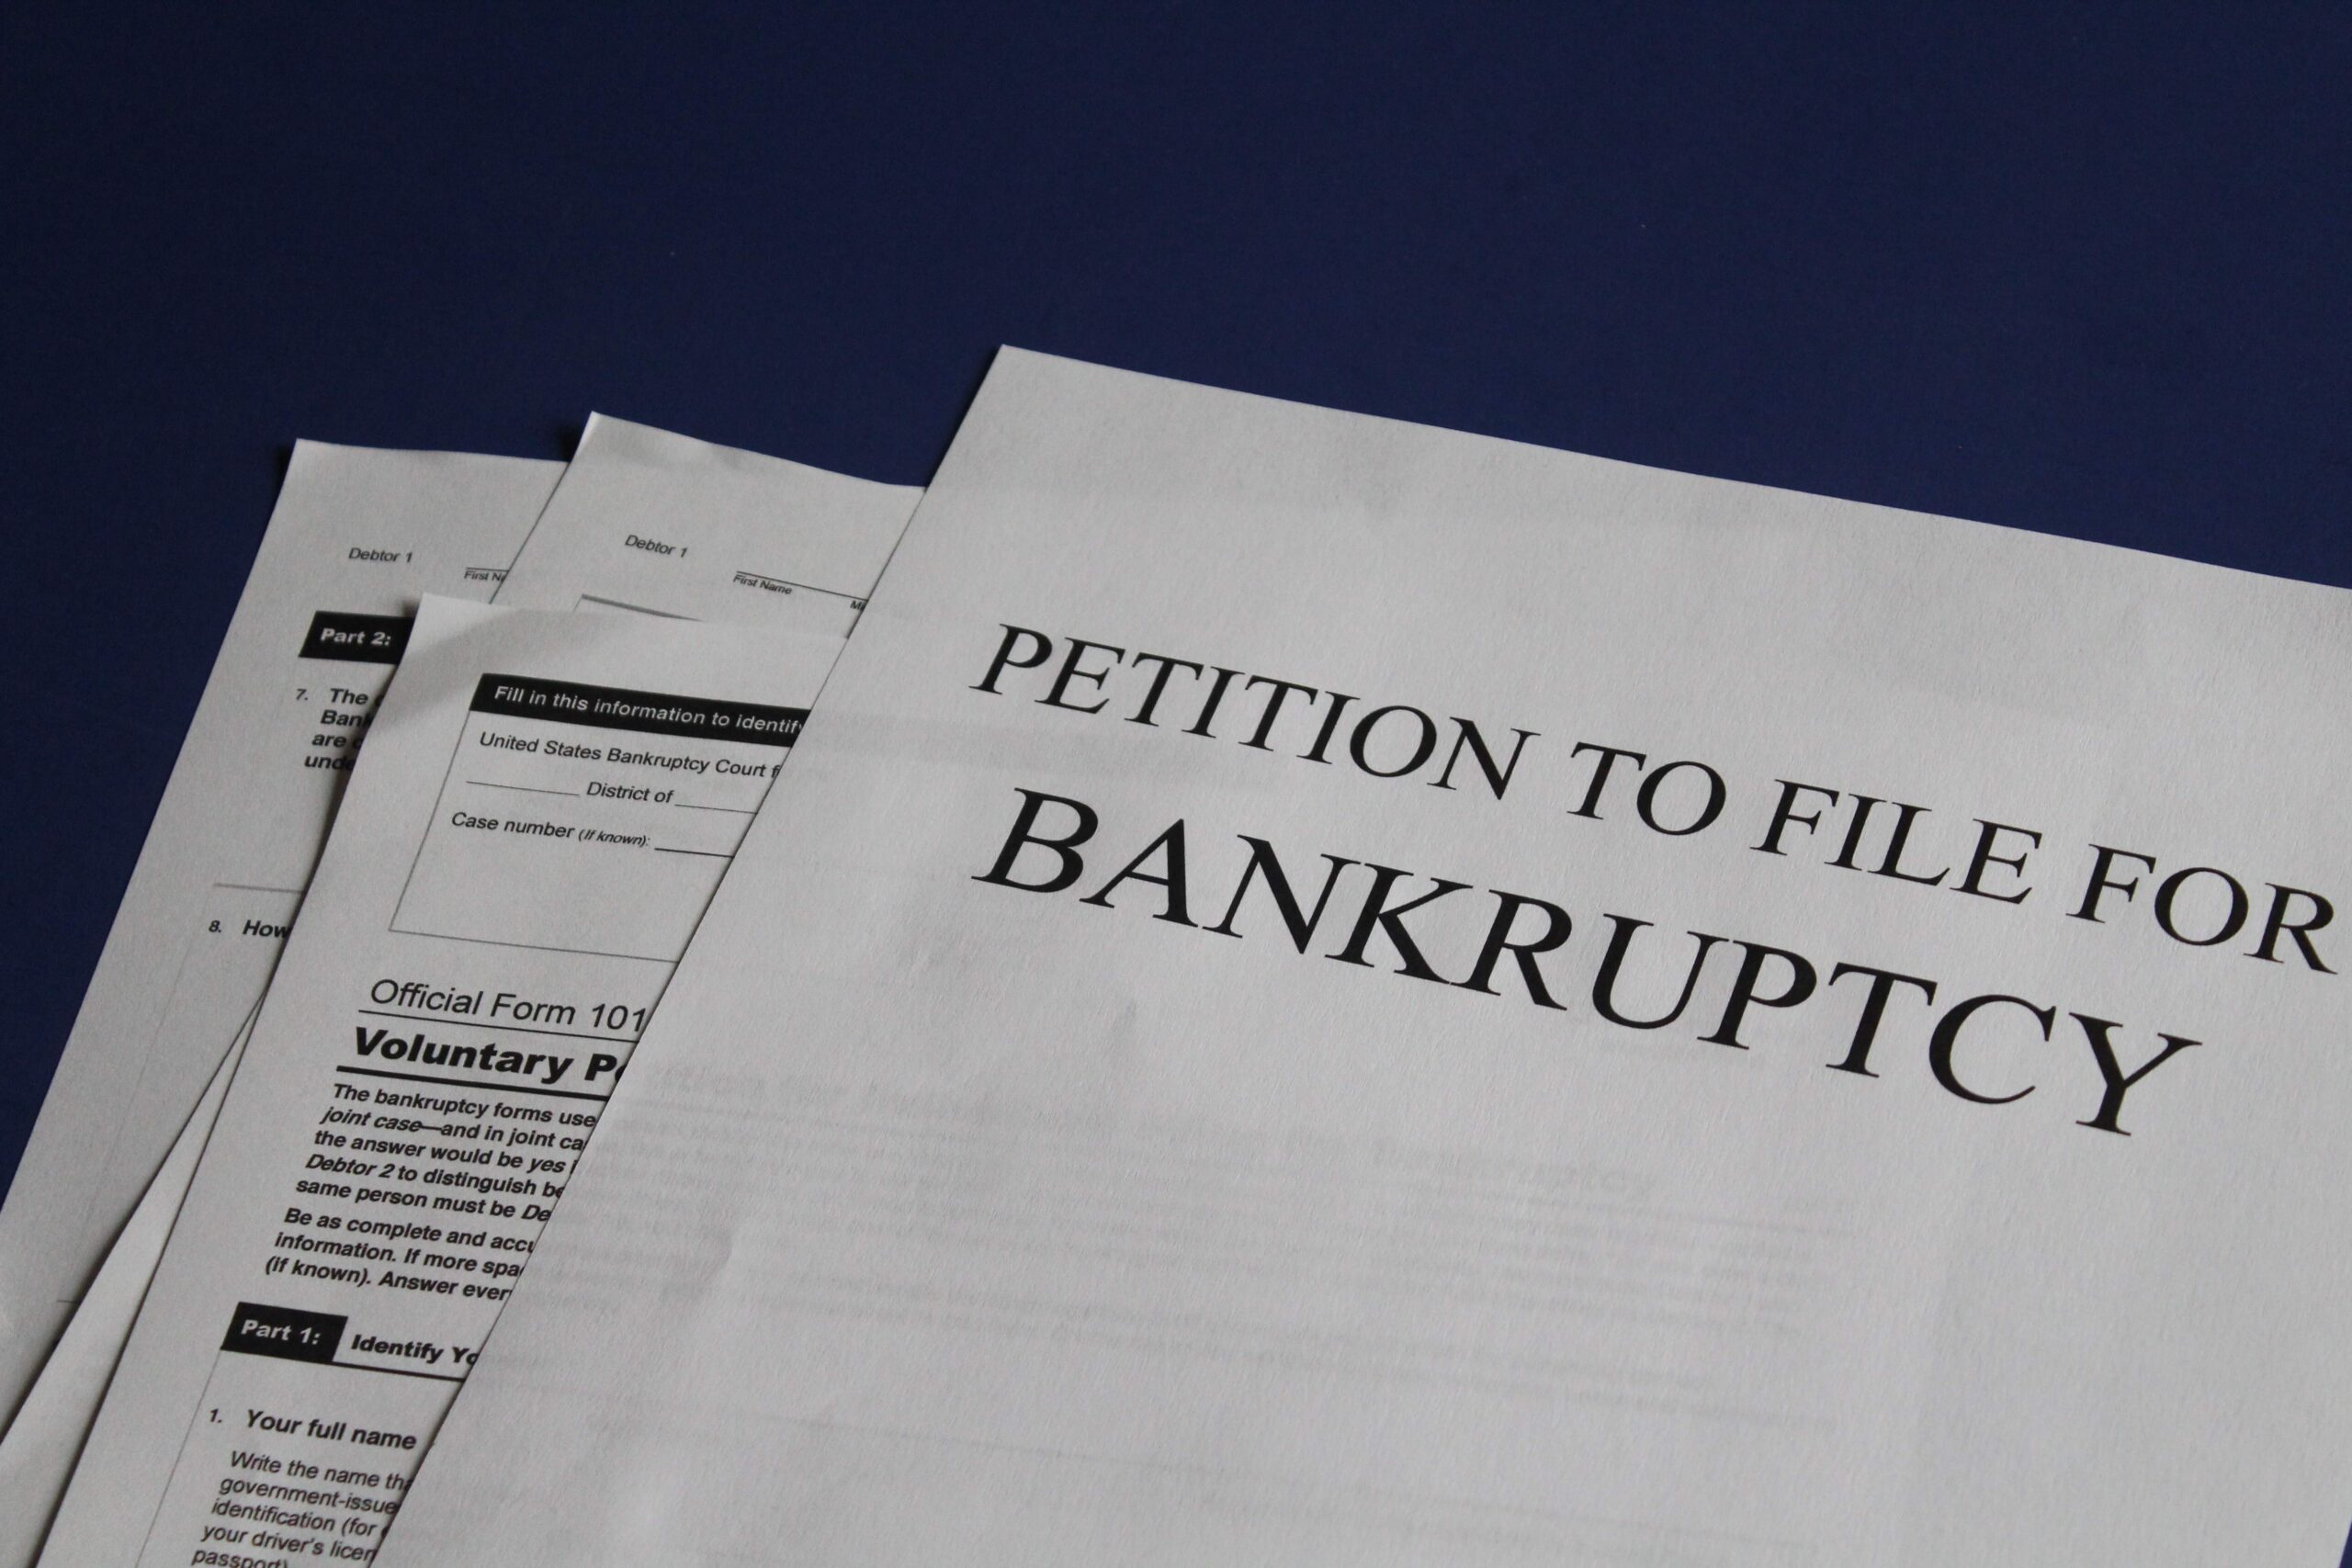 Eligibility to file for Bankruptcy